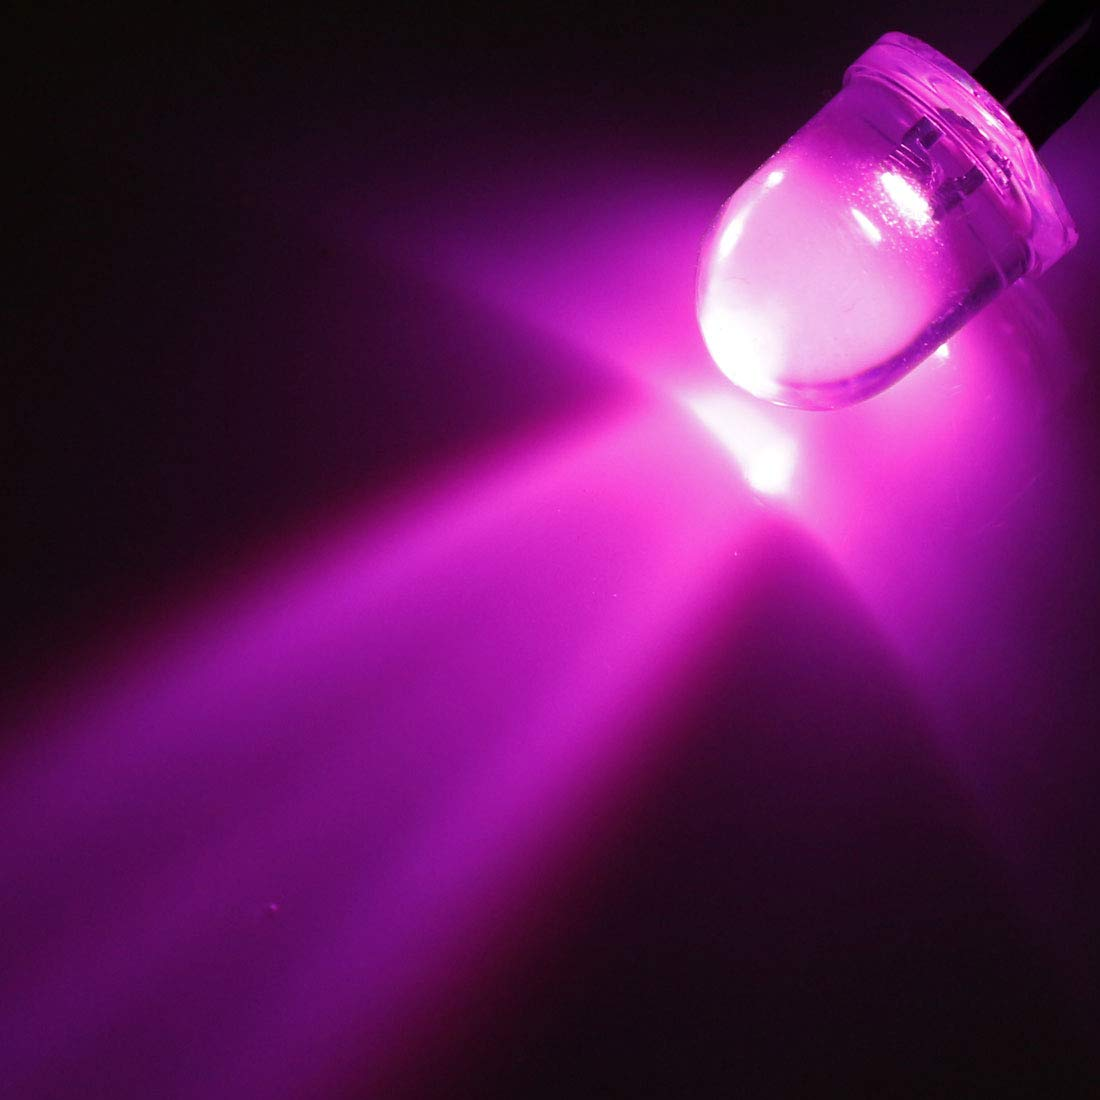 20pcs x pink 10mm Round LED Pre Wired Lights 12V 20cm Bulbs Lamp Pink